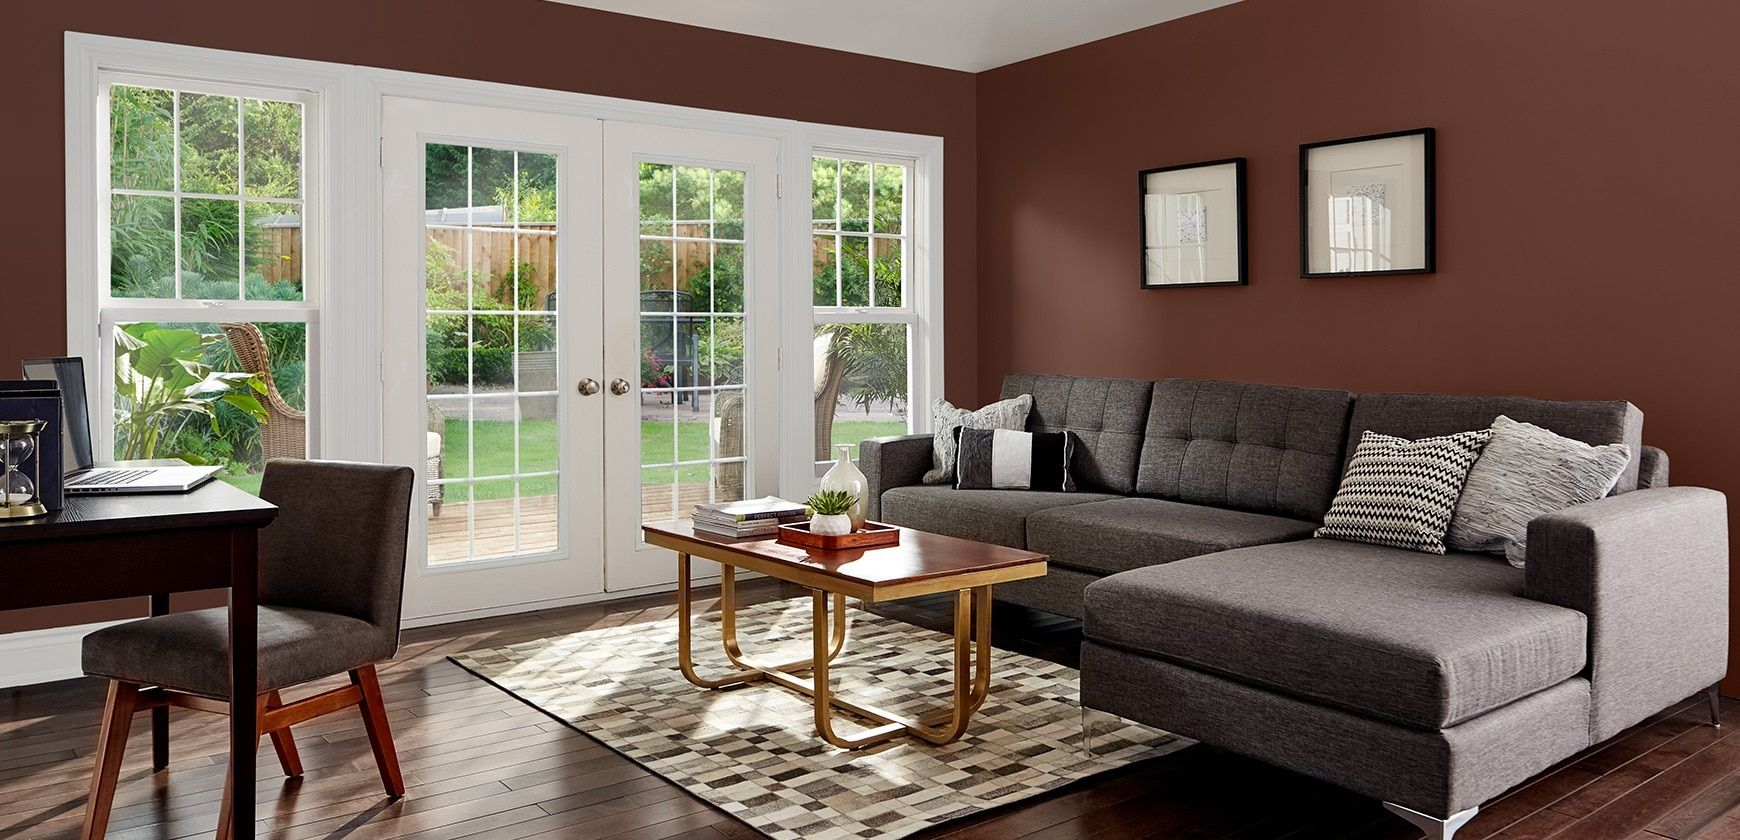 Create warm family rooms with Premier paint. Living room